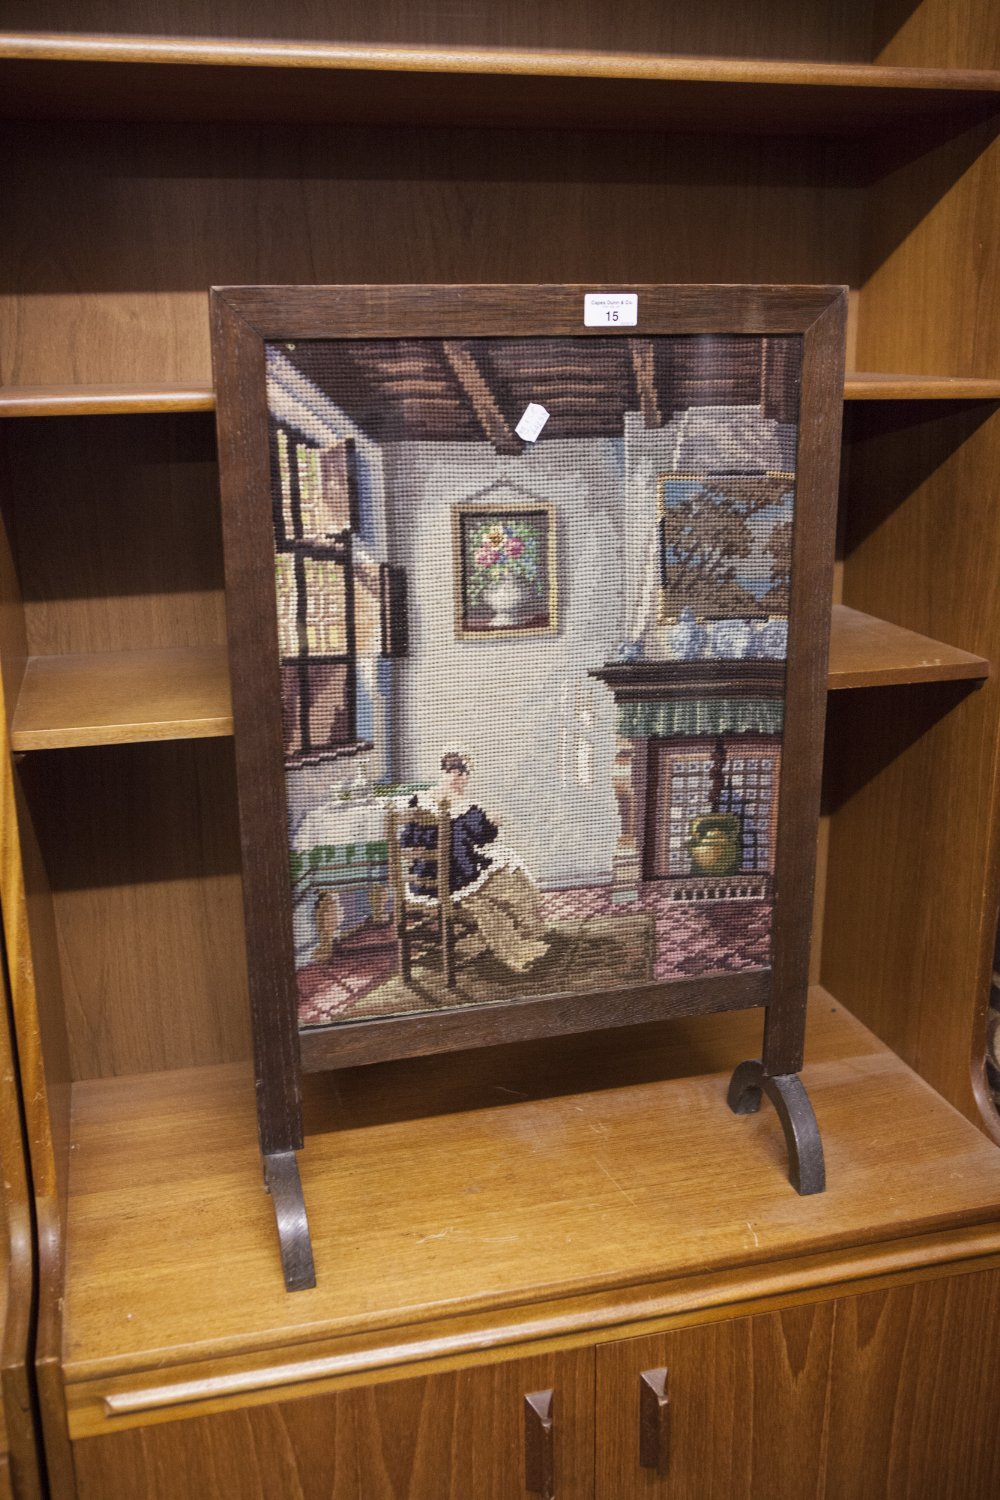 Lot 15 - A VICTORIAN FIRE SCREEN, OAK FRAME WITH NEEDLEWORK SCENE OF A SEATED WOMAN READING